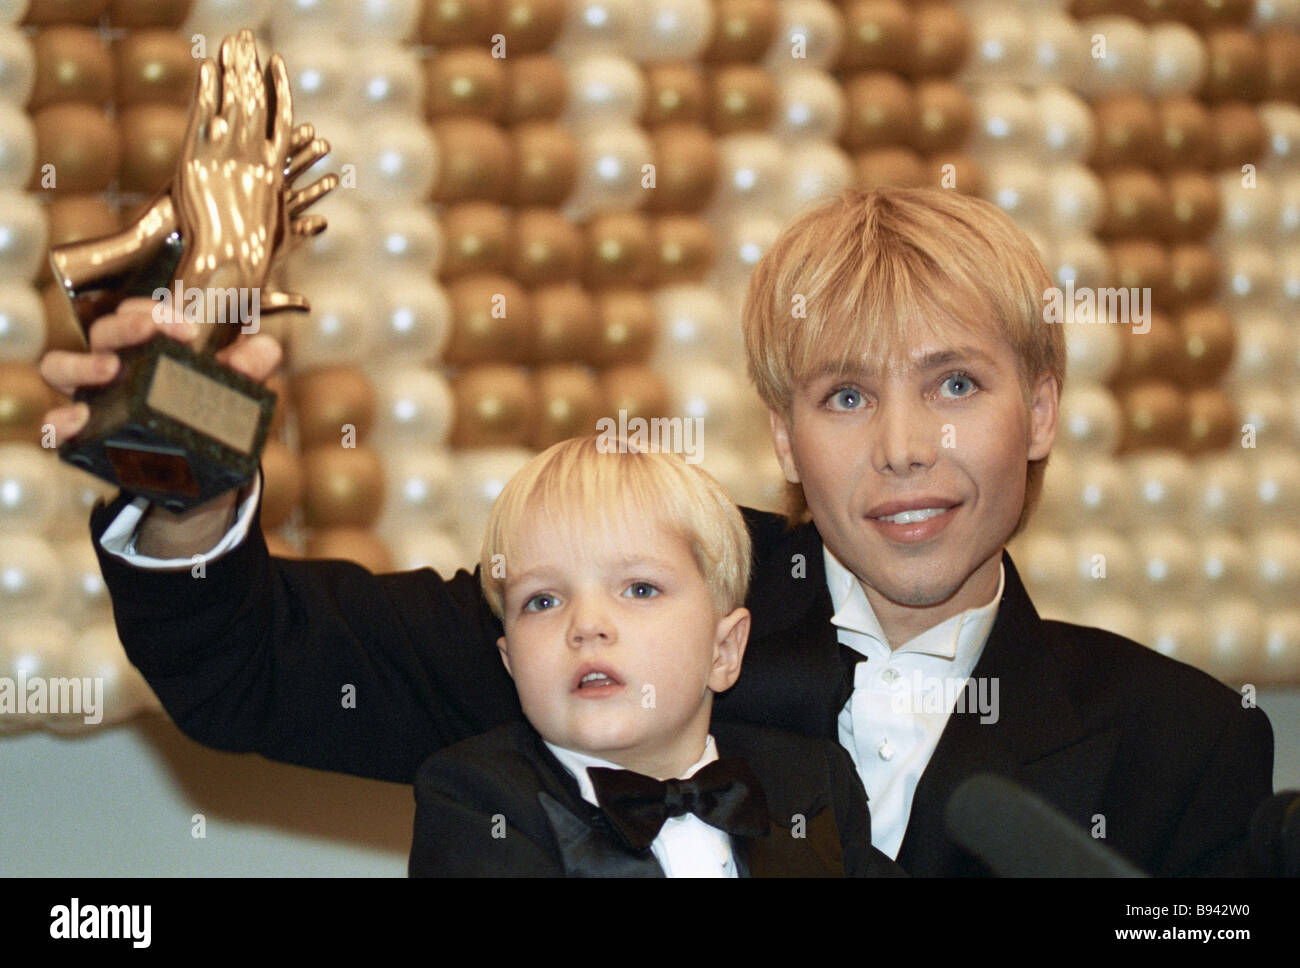 The adoptive son of Sergey Zverev received the results of the DNA test and burst into tears on 06/14/2018